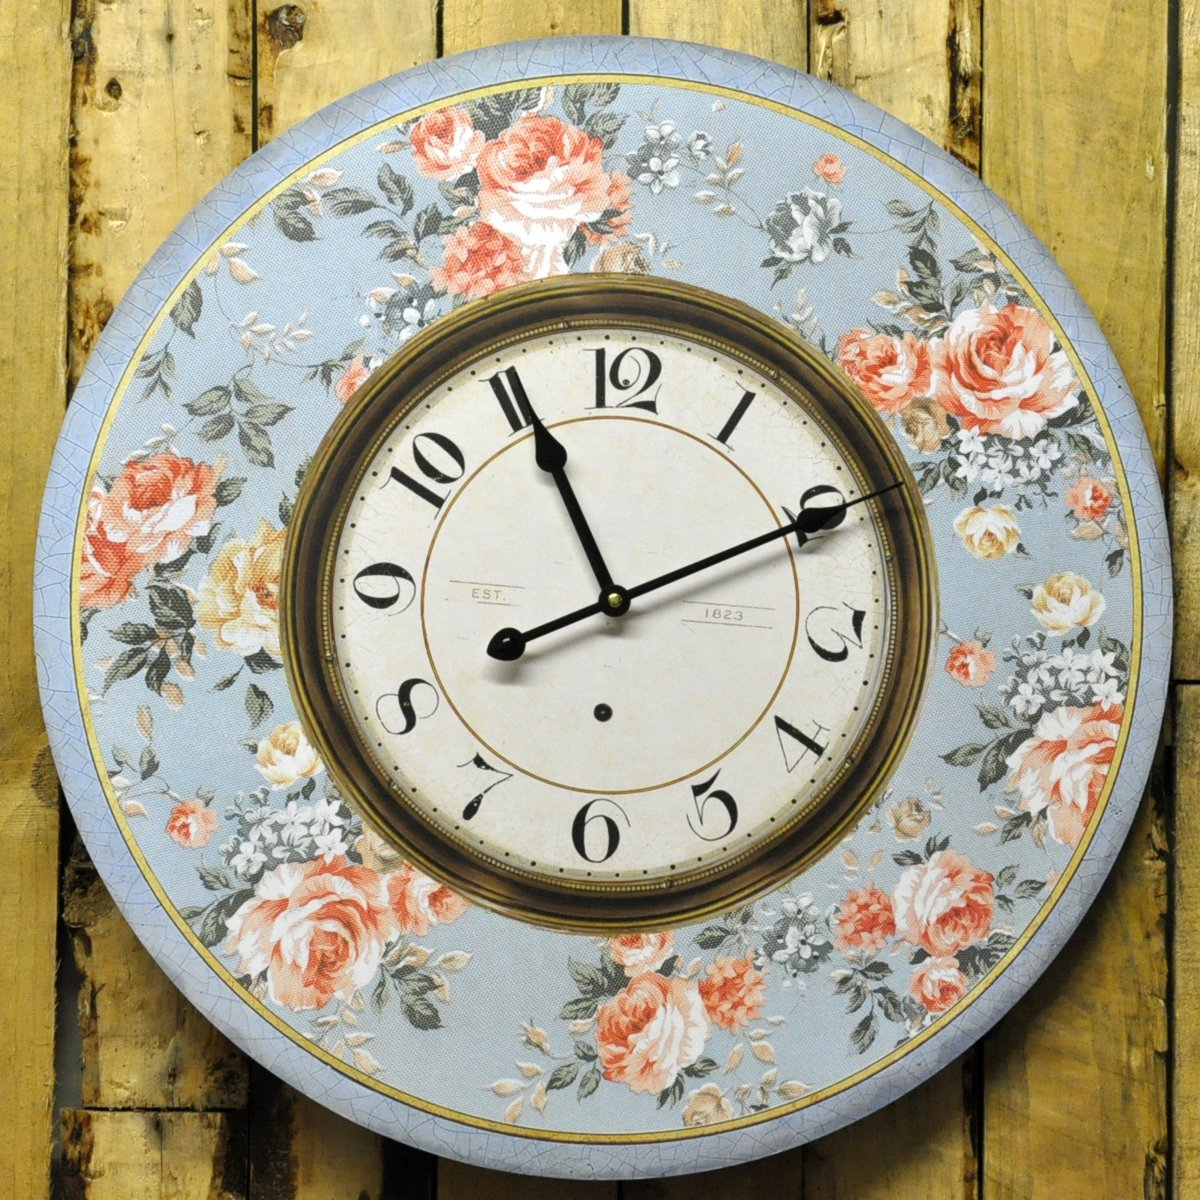 Wall Clock Floral Design : French vintage style blue floral rose design wall clock